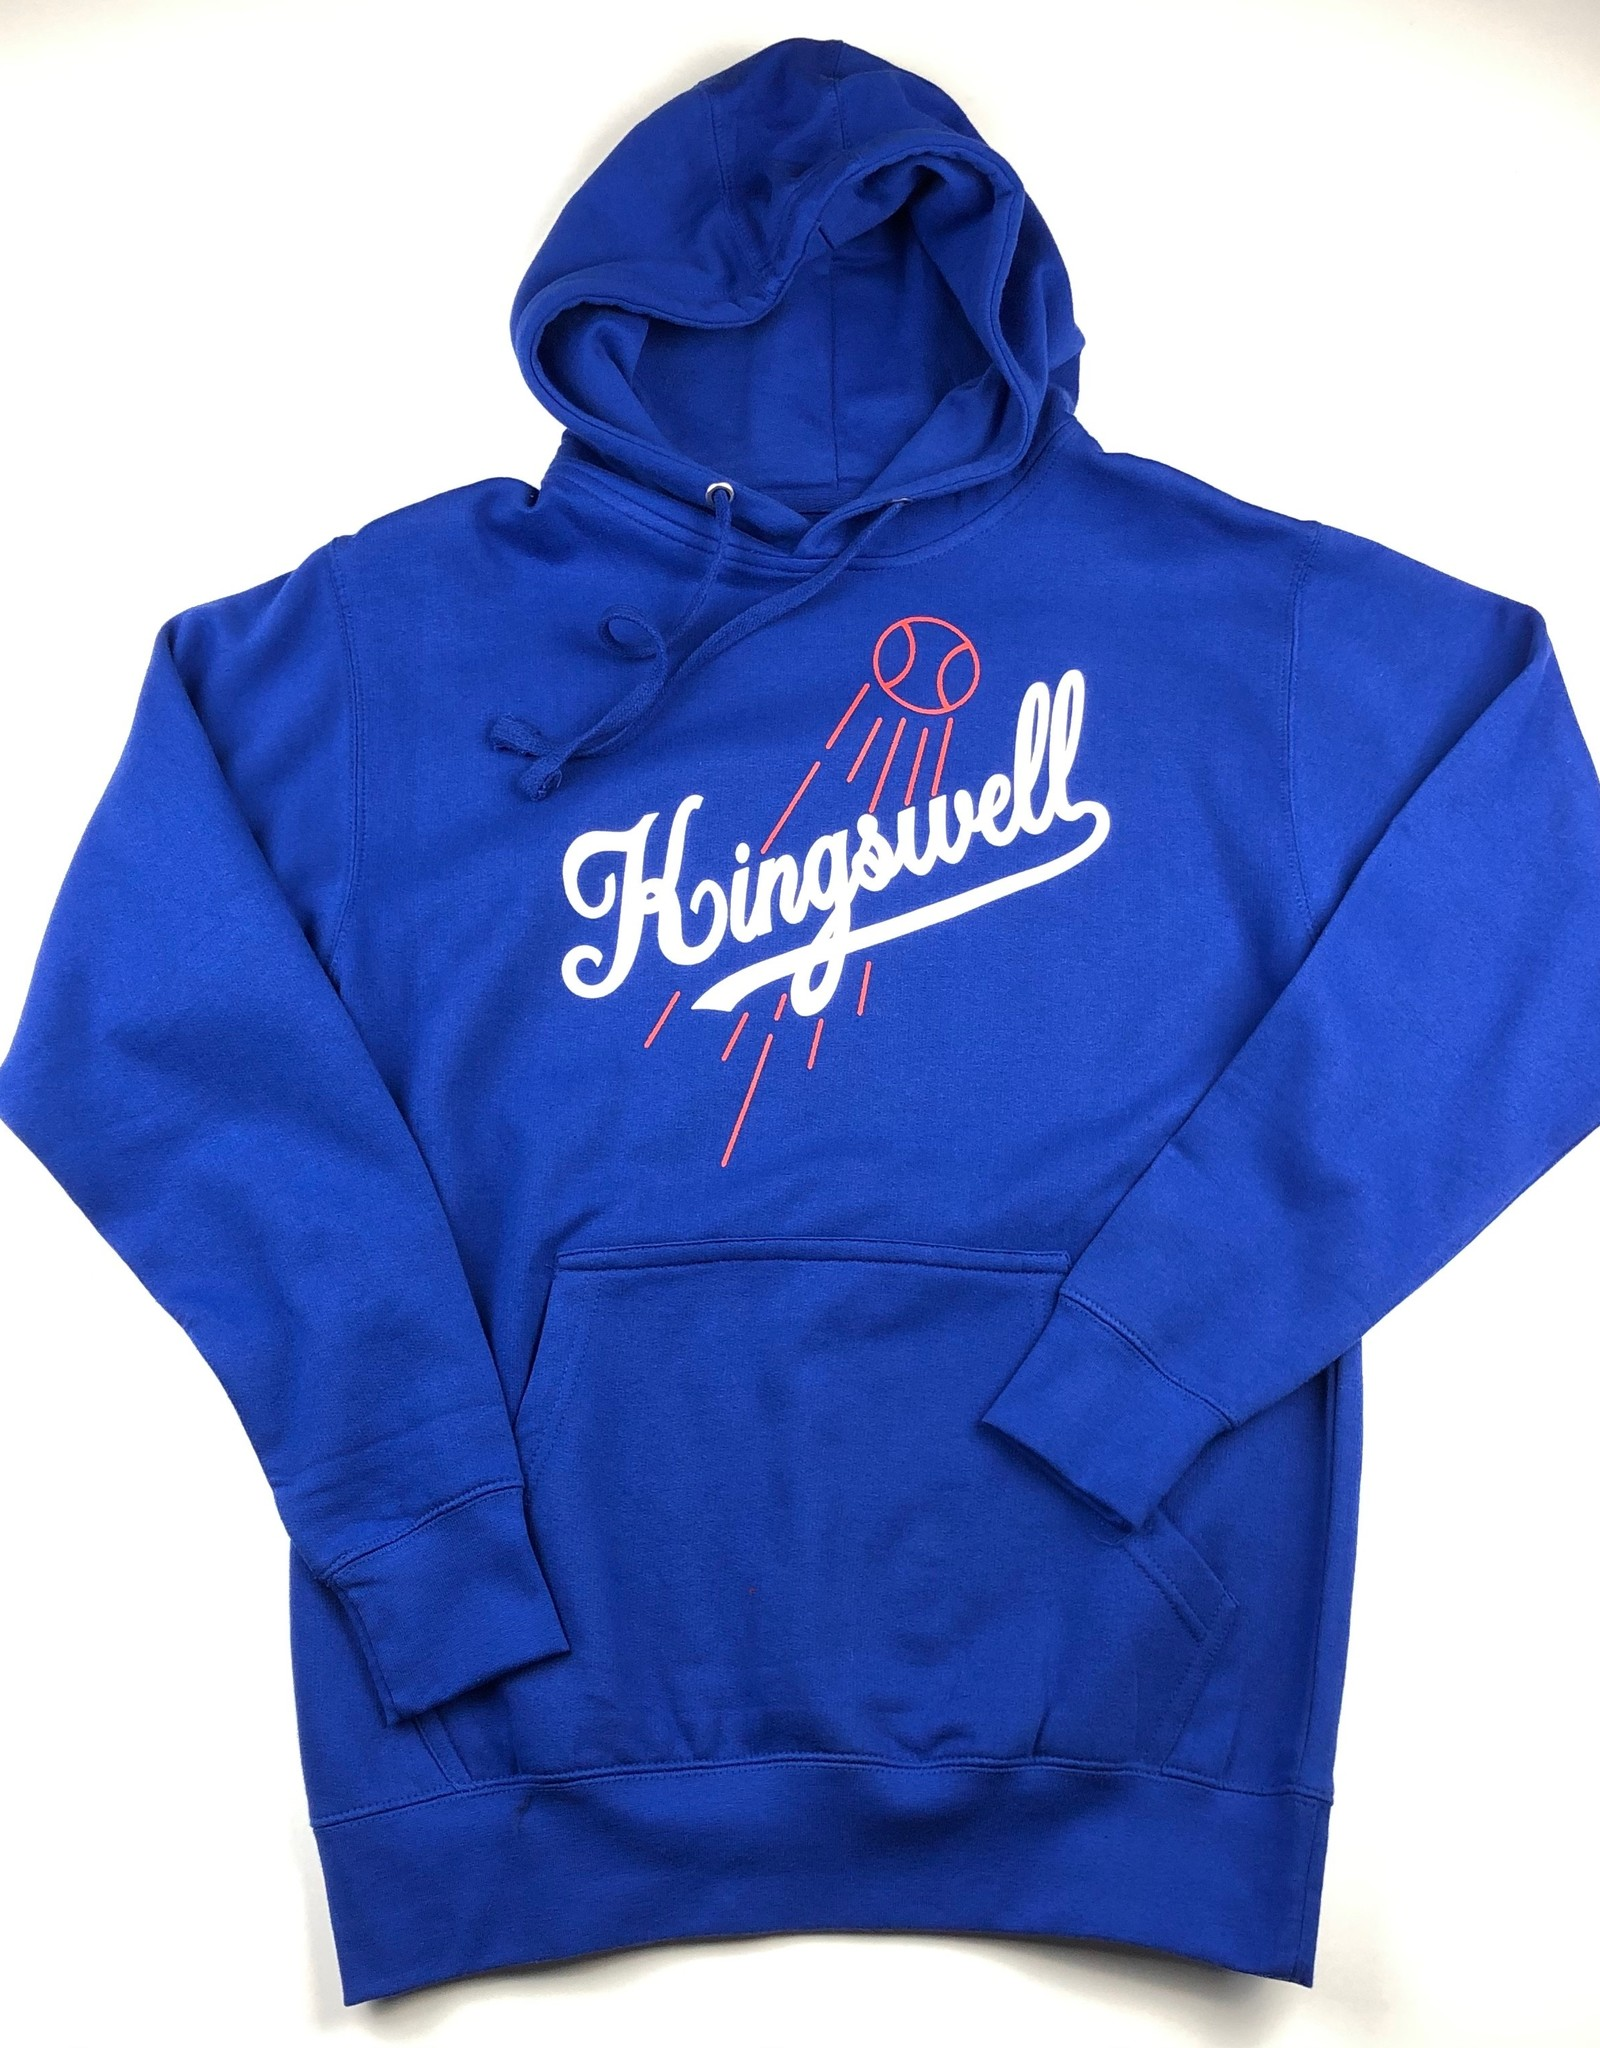 KINGSWELL KINGSWELL HOMETOWN HOODIE - (ALL COLORS)